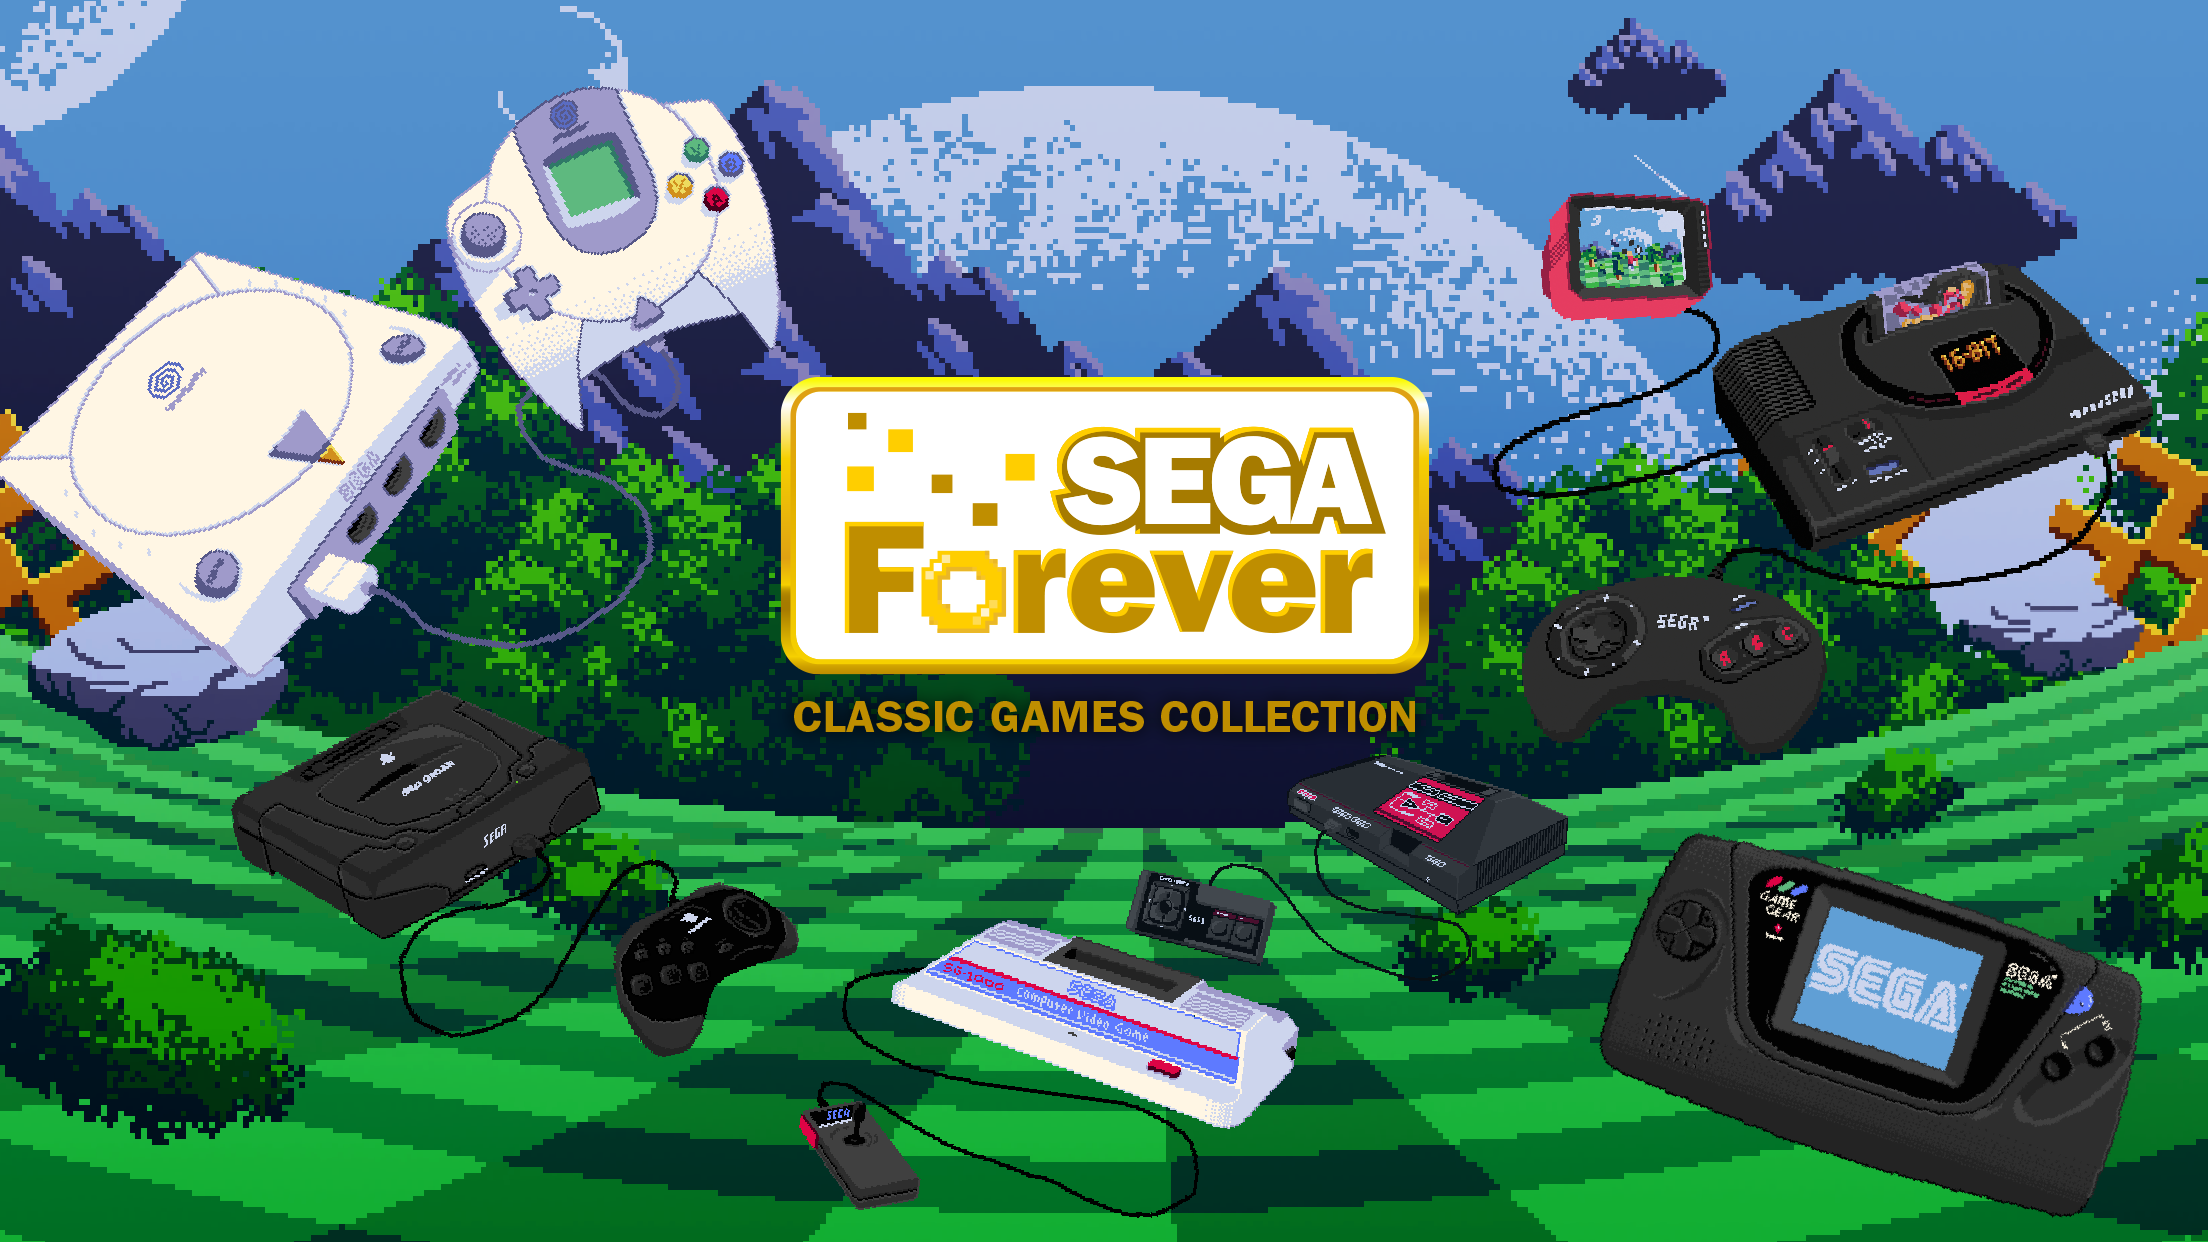 [Update] The classic game streaming service SEGA Forever kicks off on iOS and Android